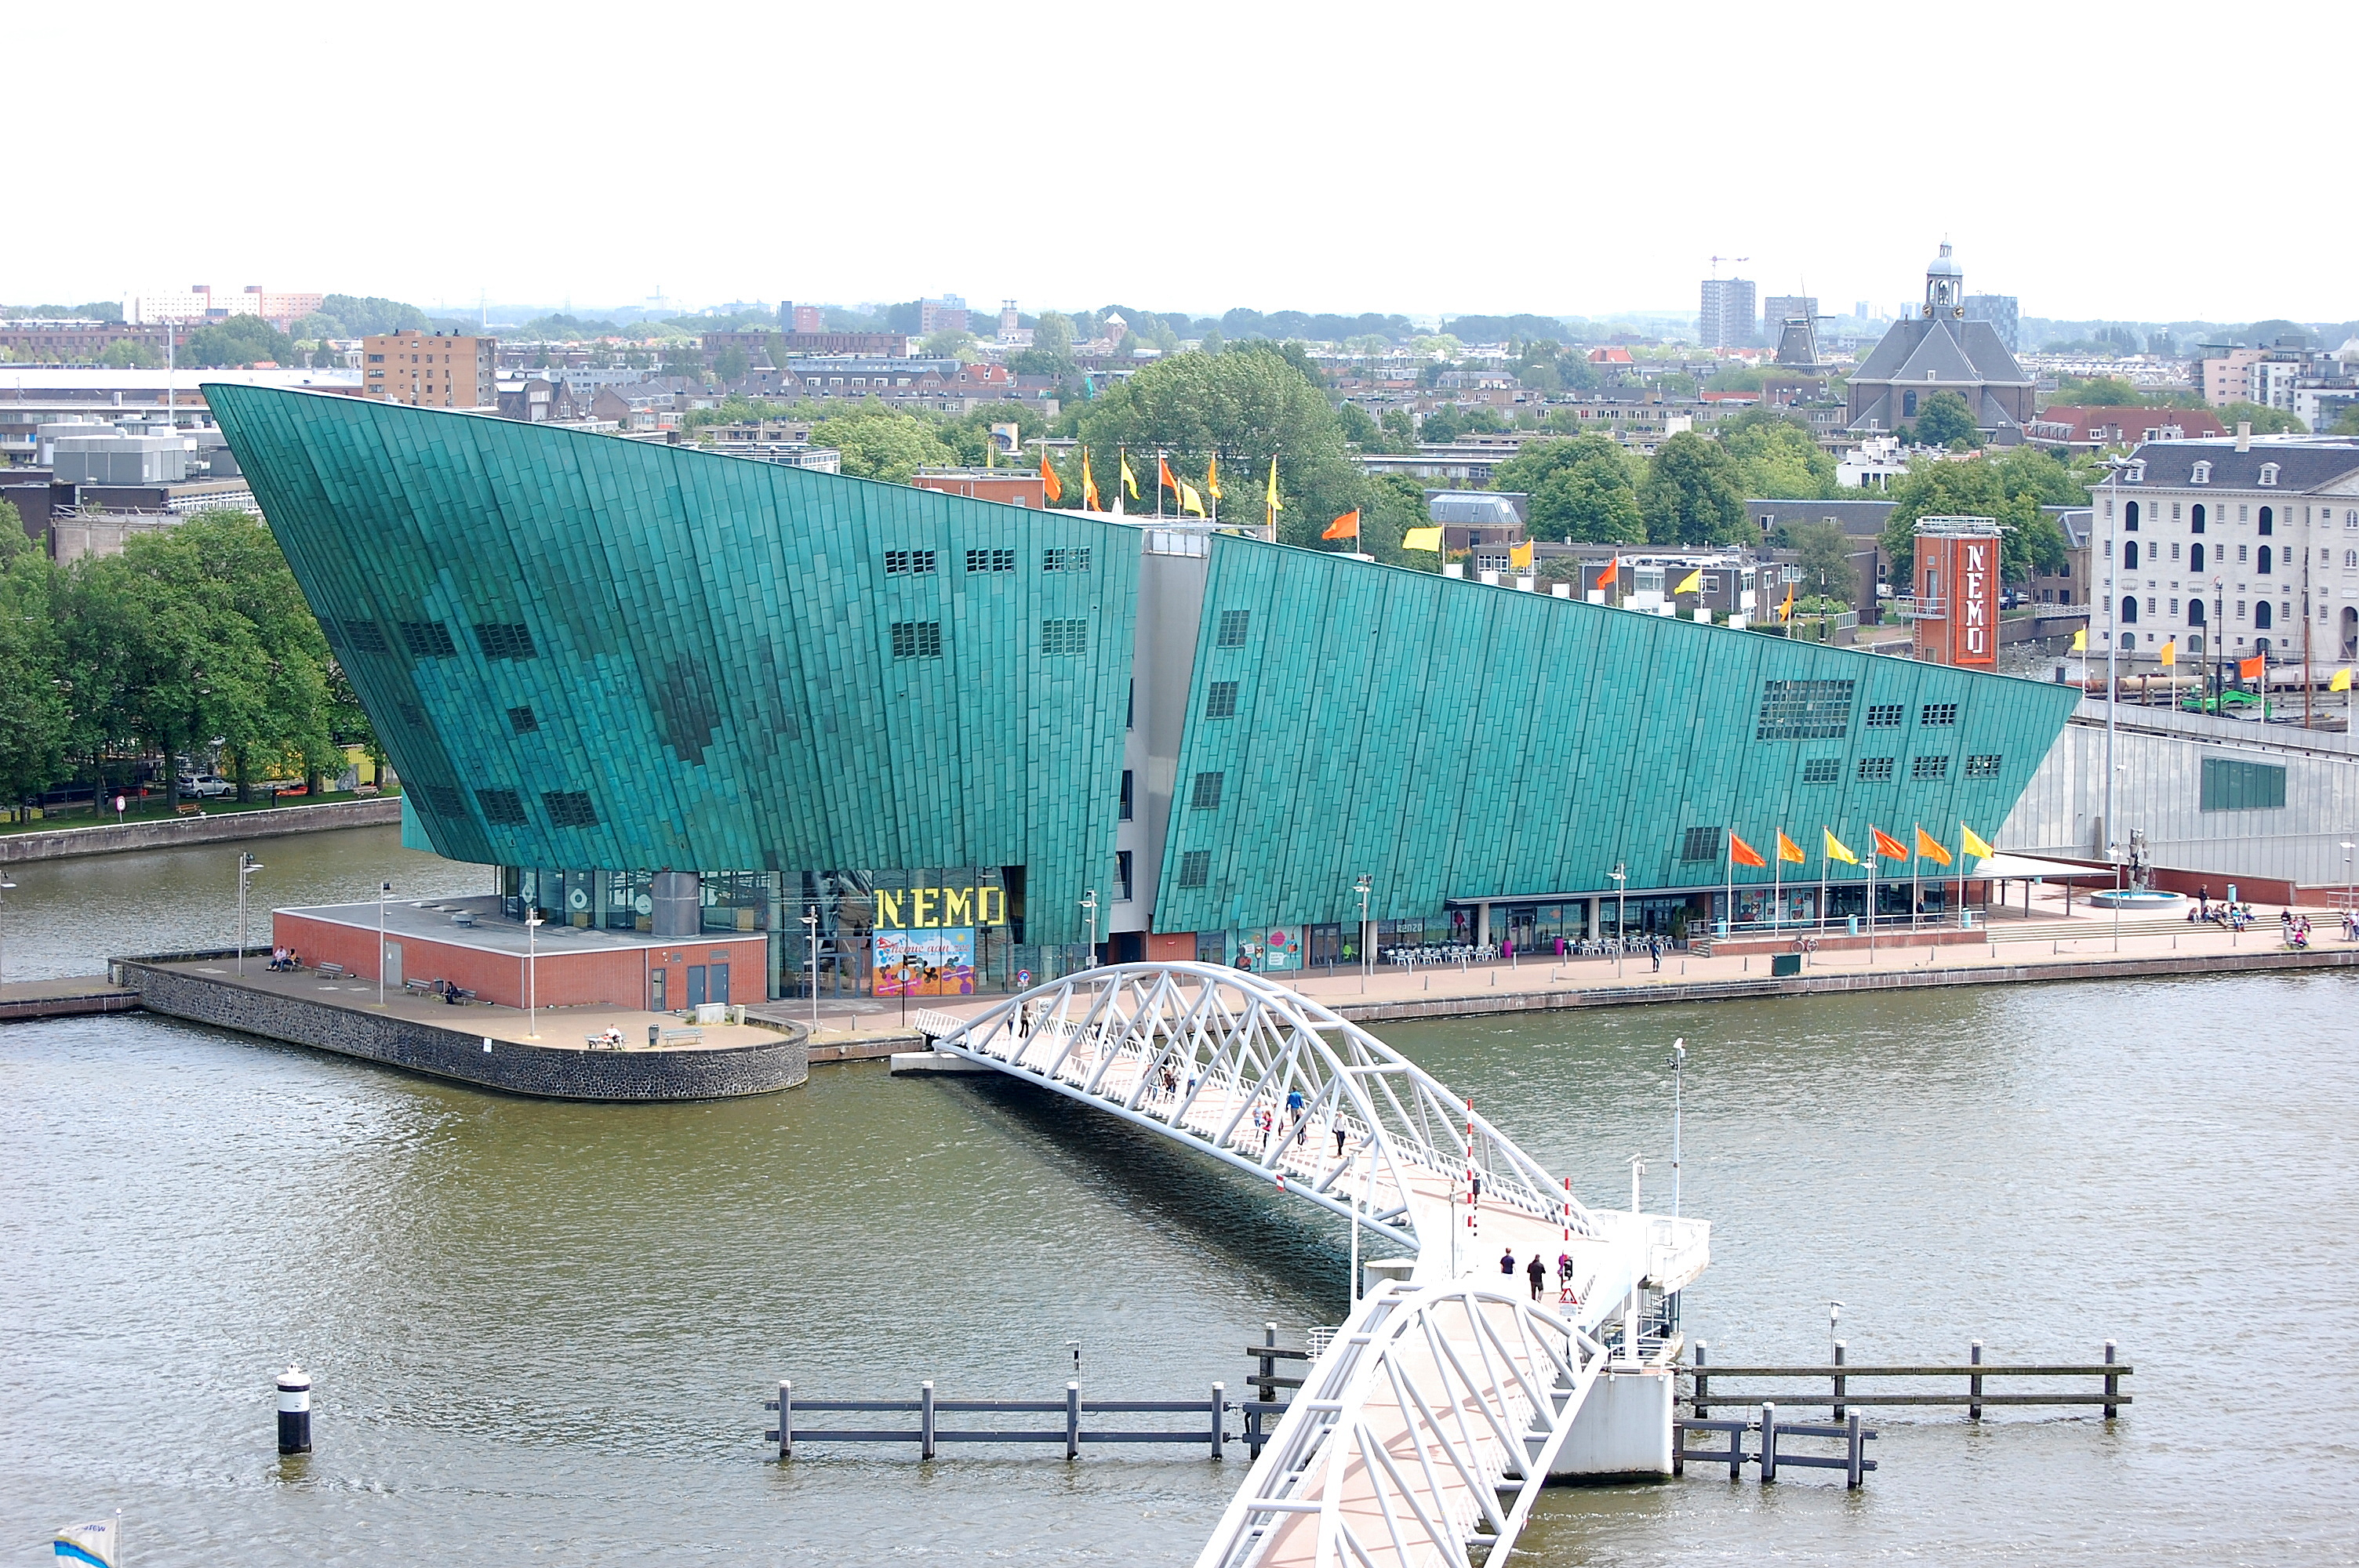 Science center nemo museum in amsterdam thousand wonders for Museum amsterdam